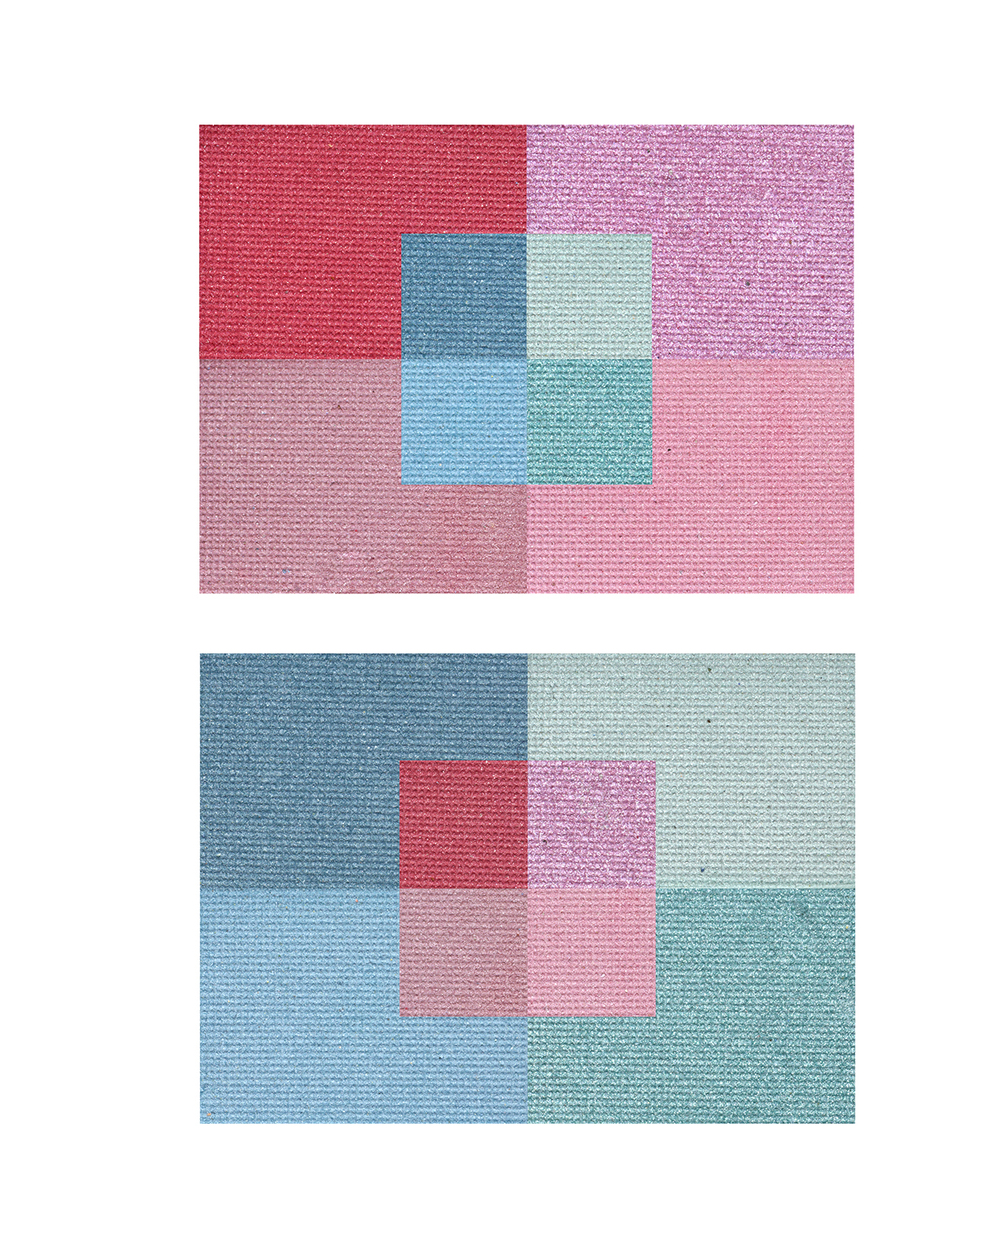 Transformations-Color-Rectangles.jpg